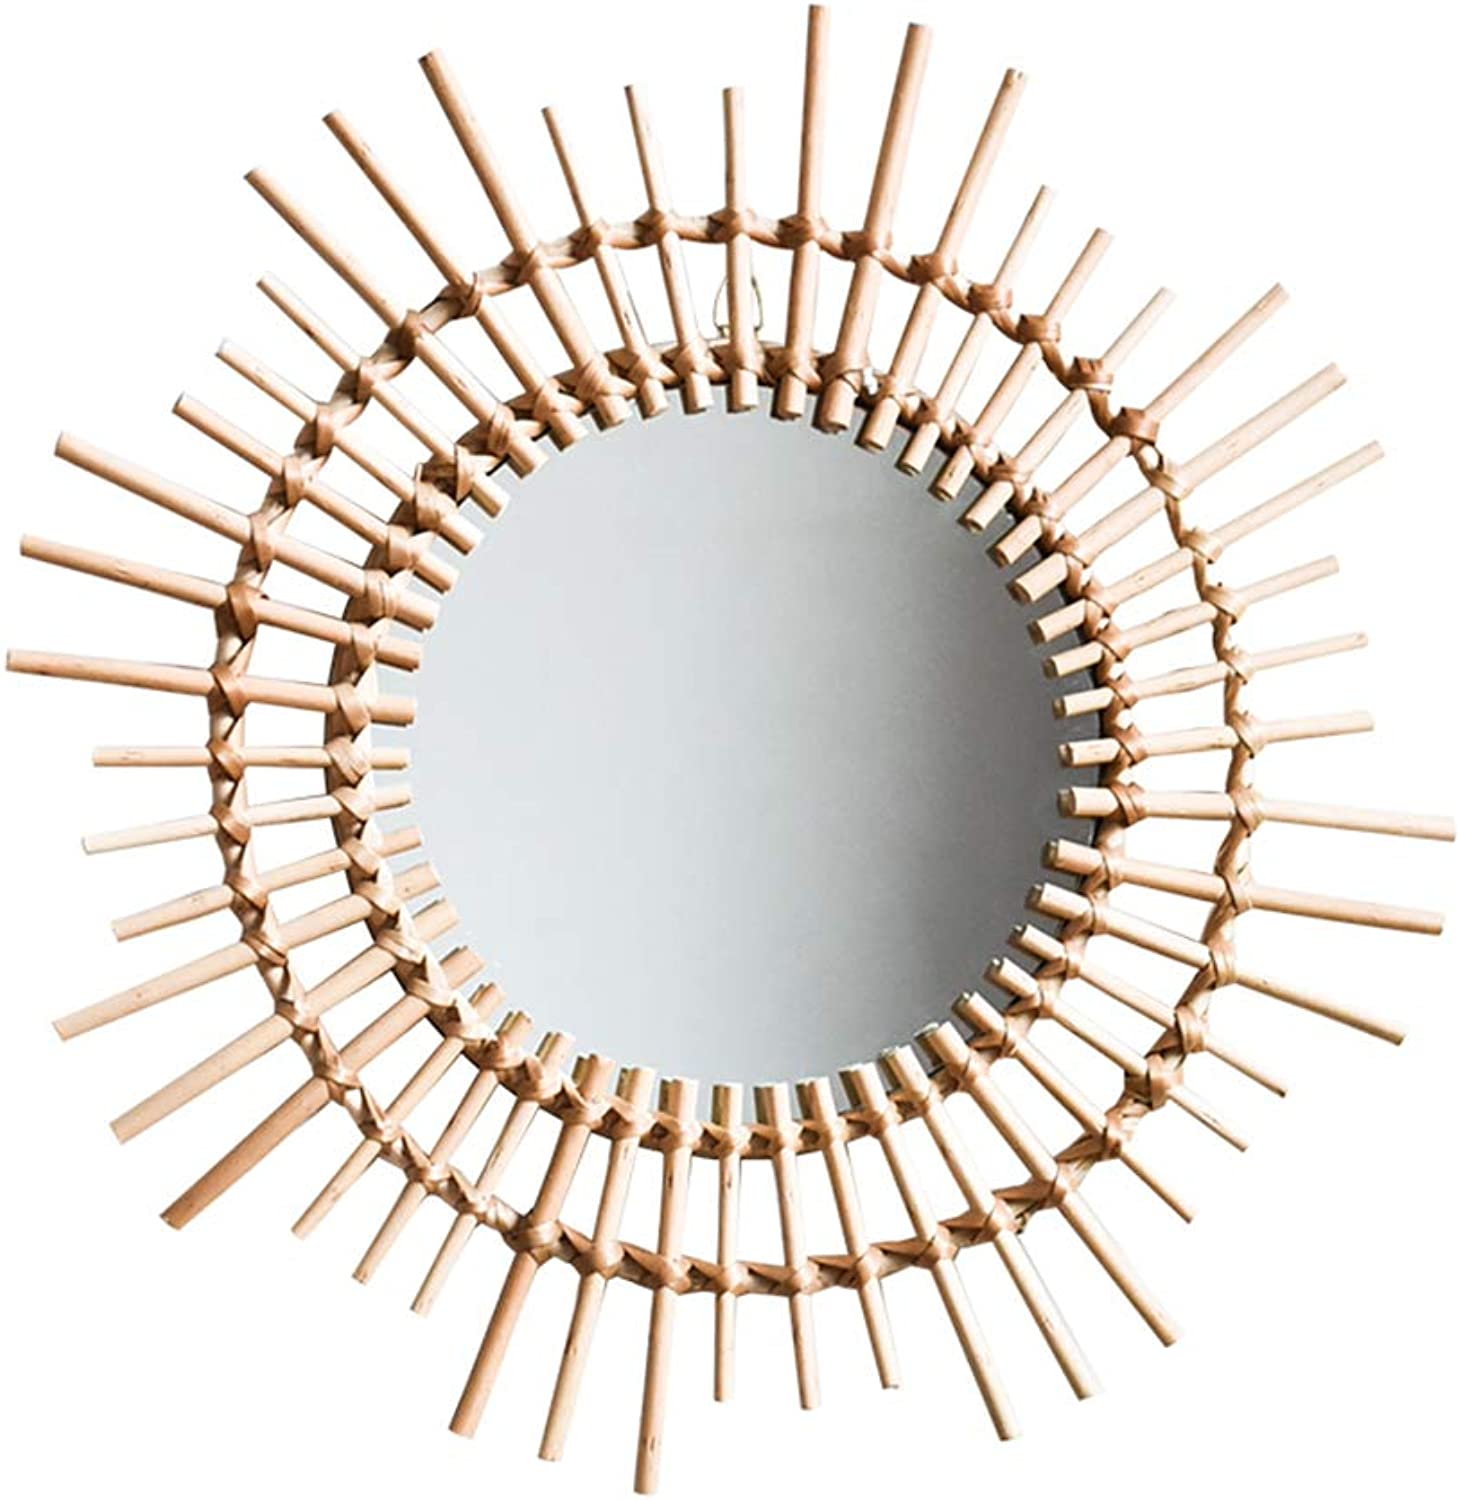 Mirror, Dresser Mirror Wall Decoration Hanging Mirror Rattan Knitting Nordic Round Mirror Irregular Border Entrance, Living Room 54 cm in Diameter